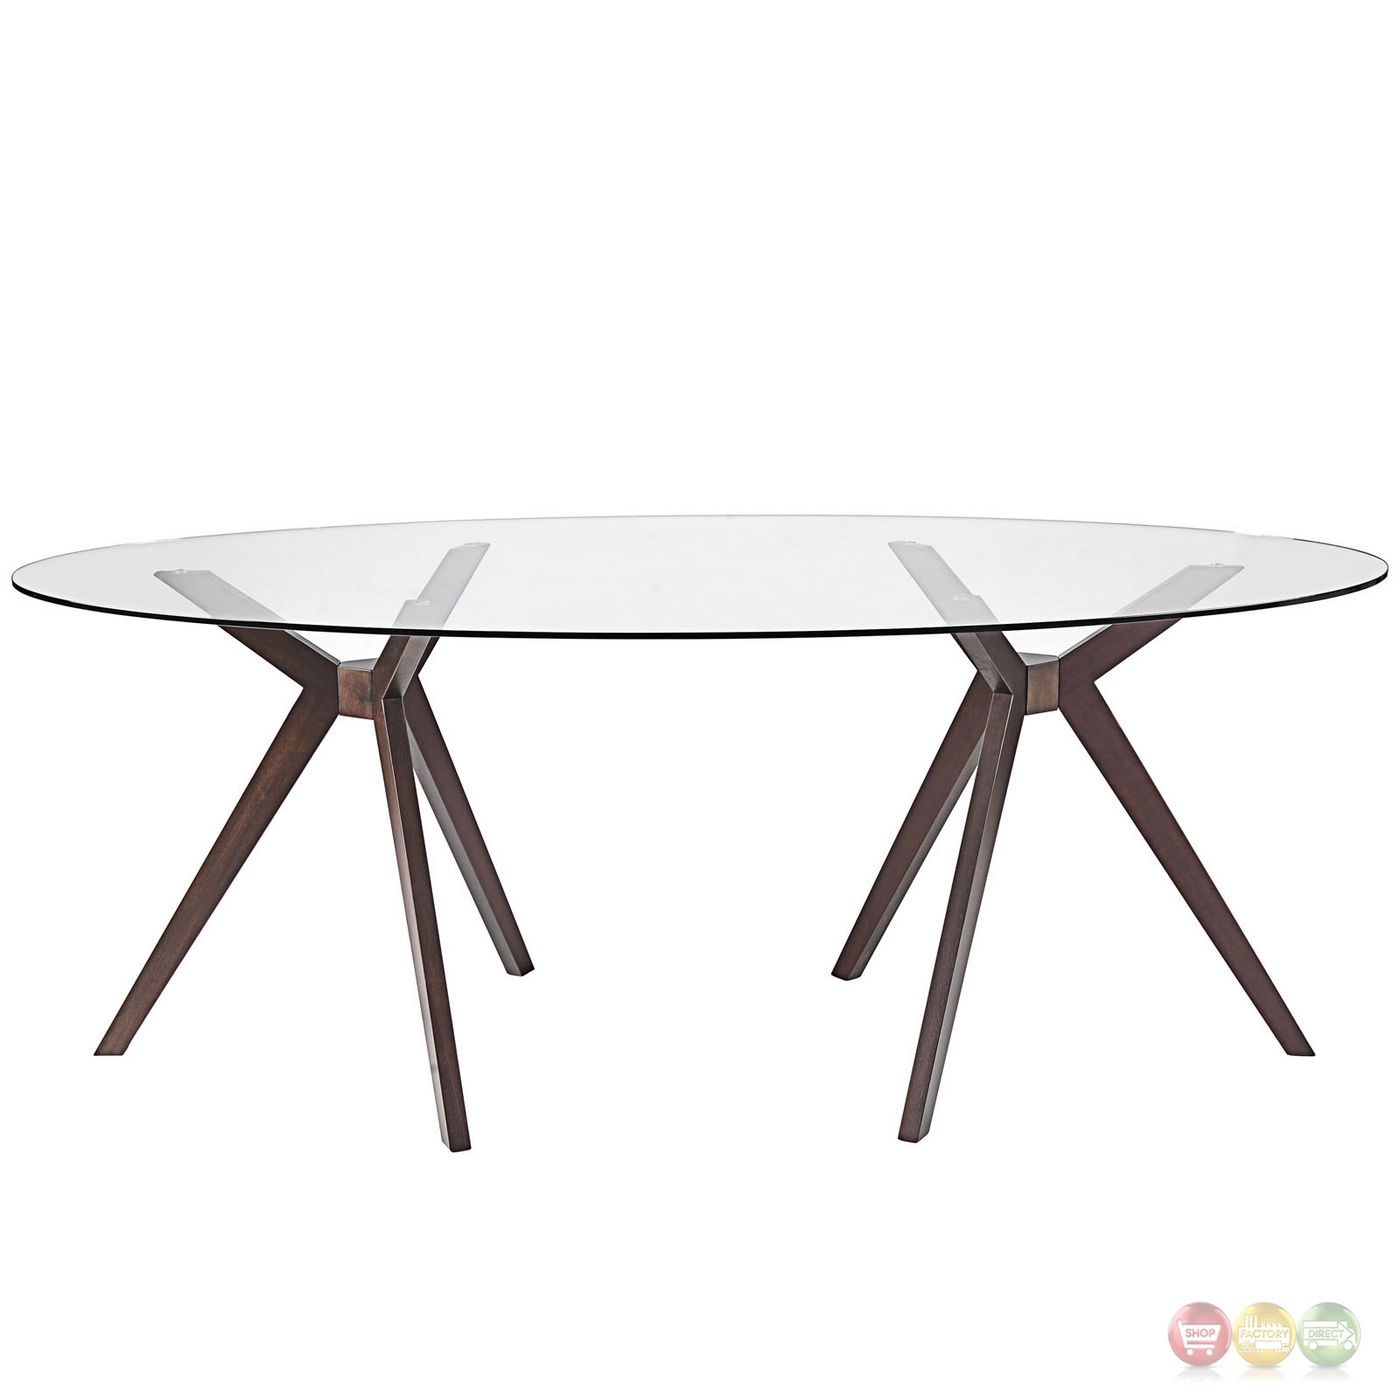 Table With Wood Base Dining Room Tables Glass Dining Table Wooden Base